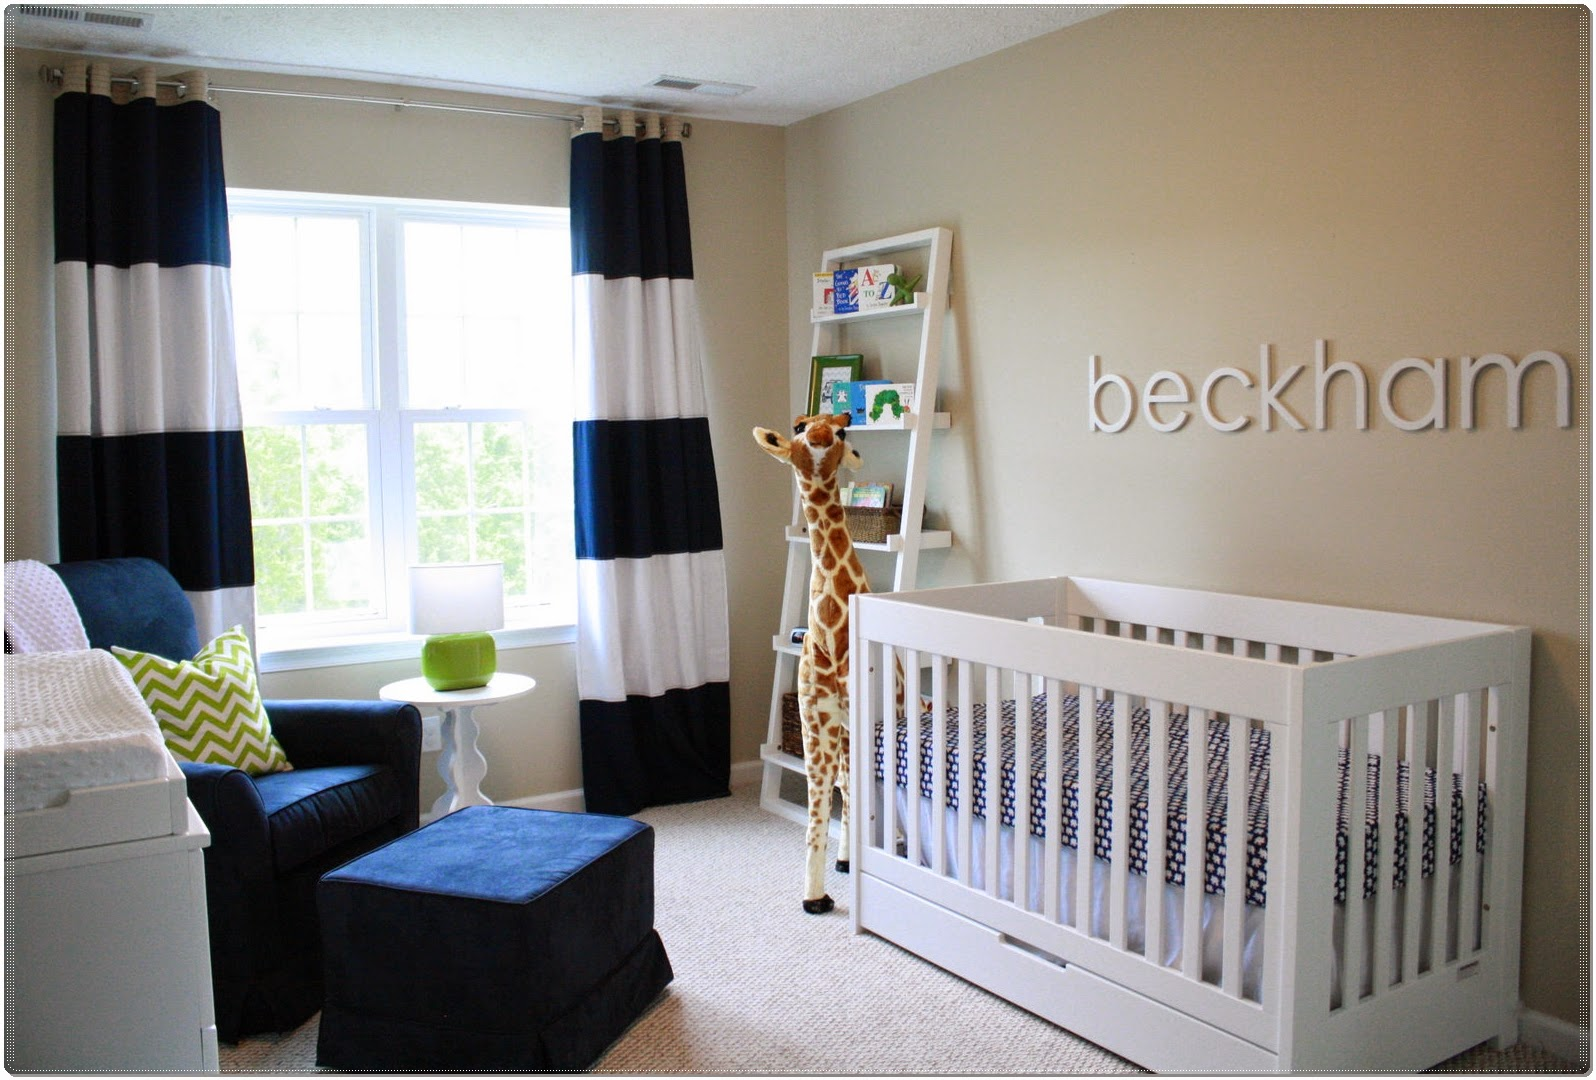 Newborn Baby Bedroom Black Baby Cribs Full Size Of Design Wood Floor Material Taupe